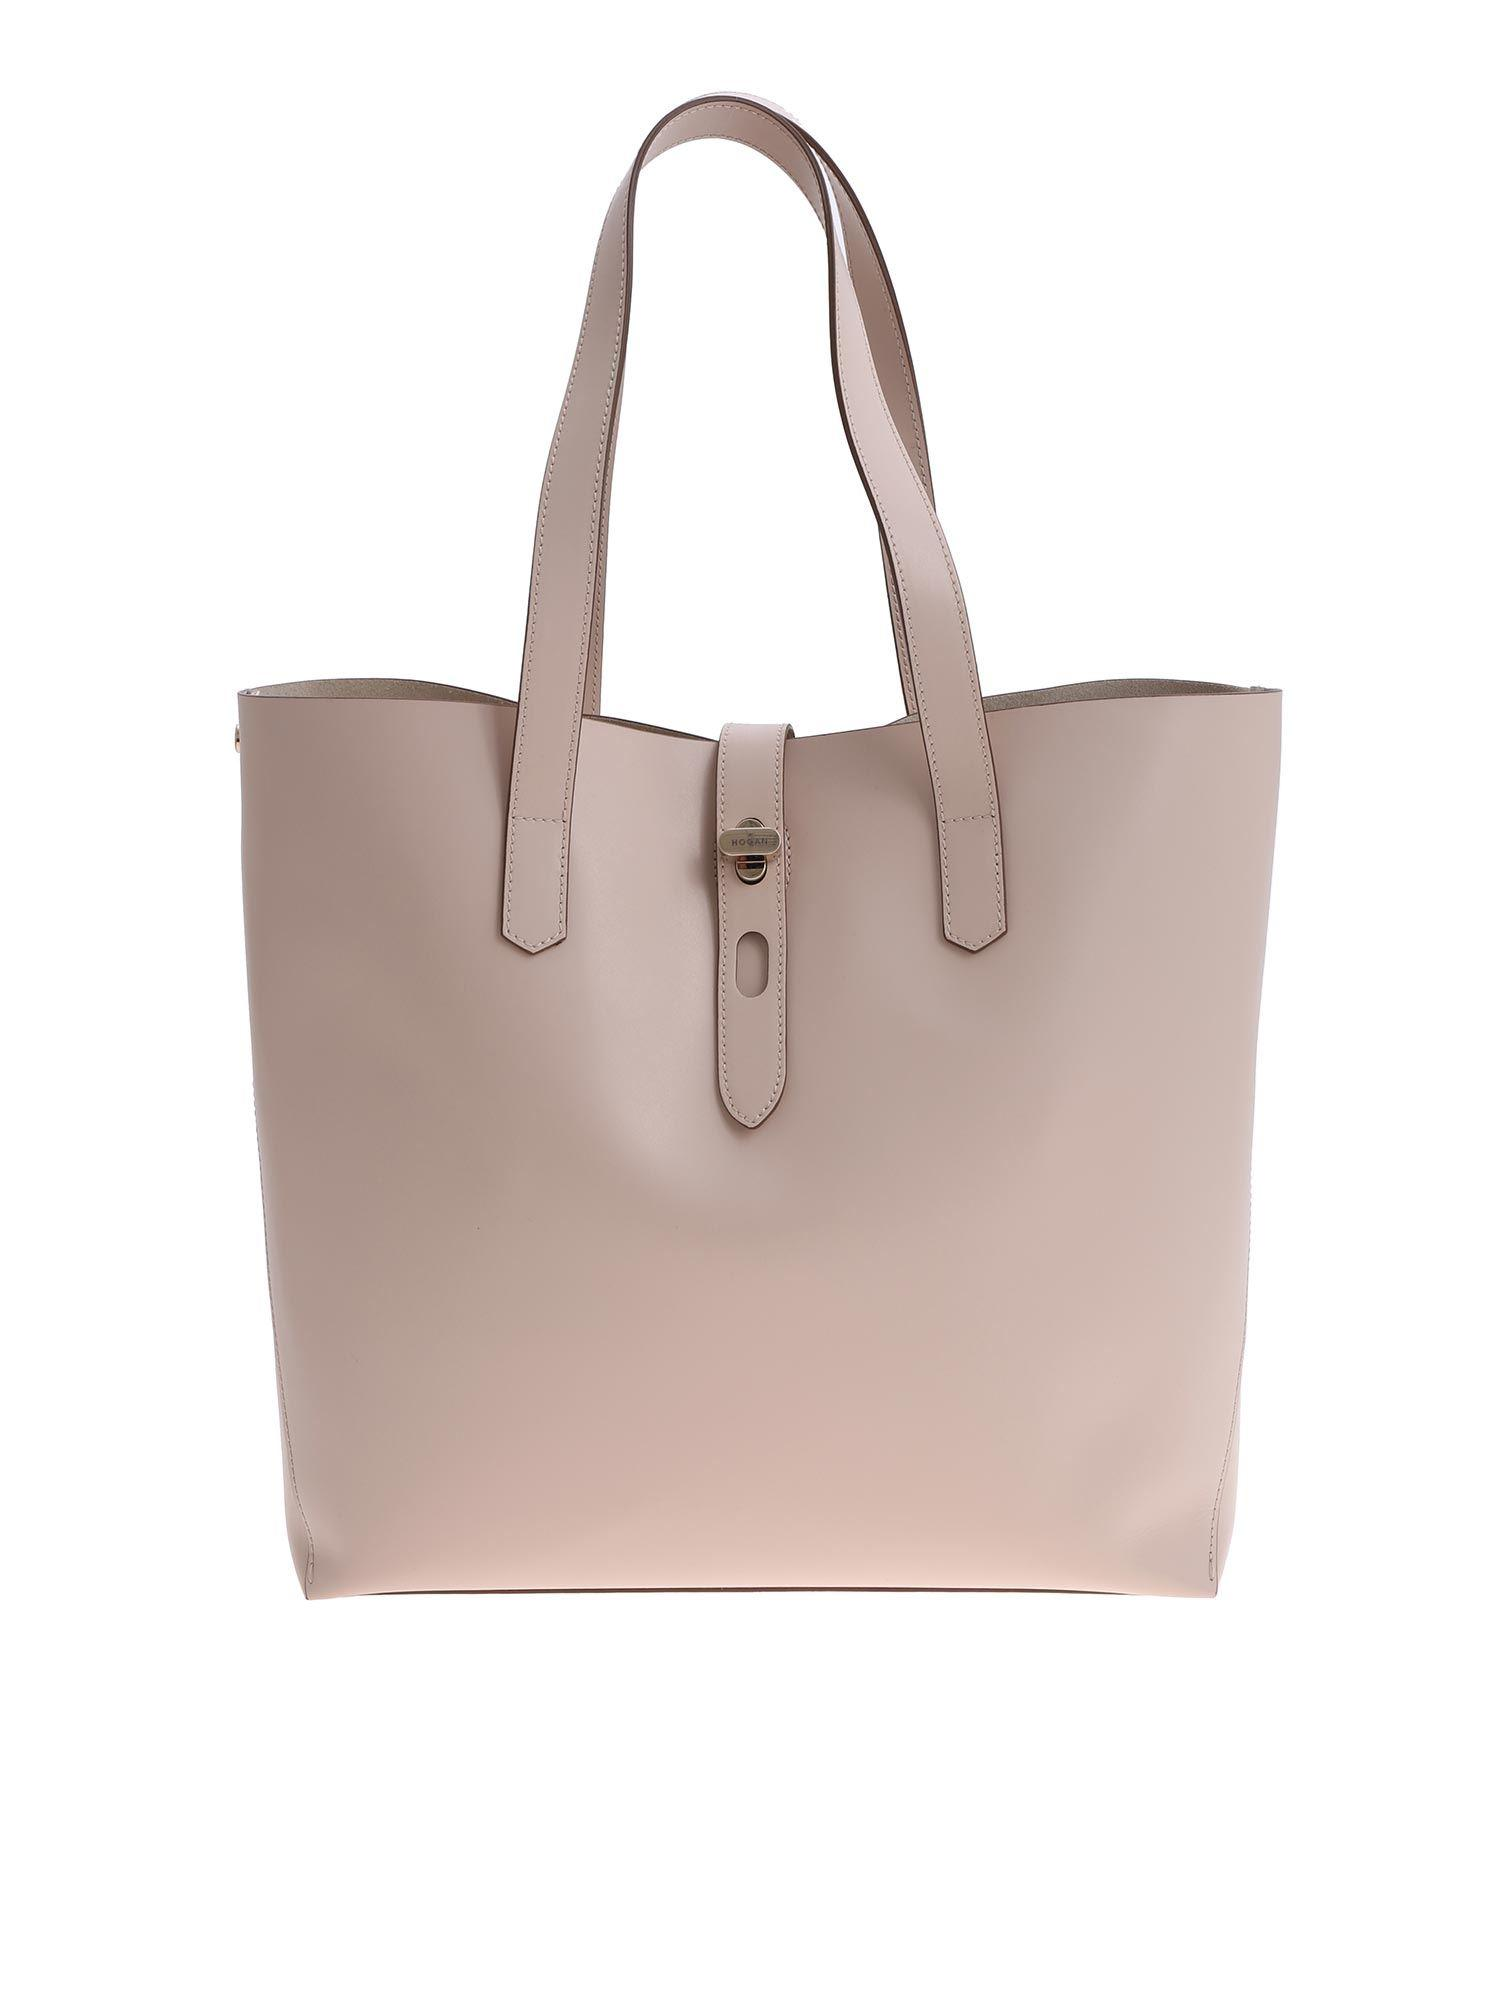 Lyst - Hogan Beige Shoulder Bag in Natural 7ad62f11d47b2